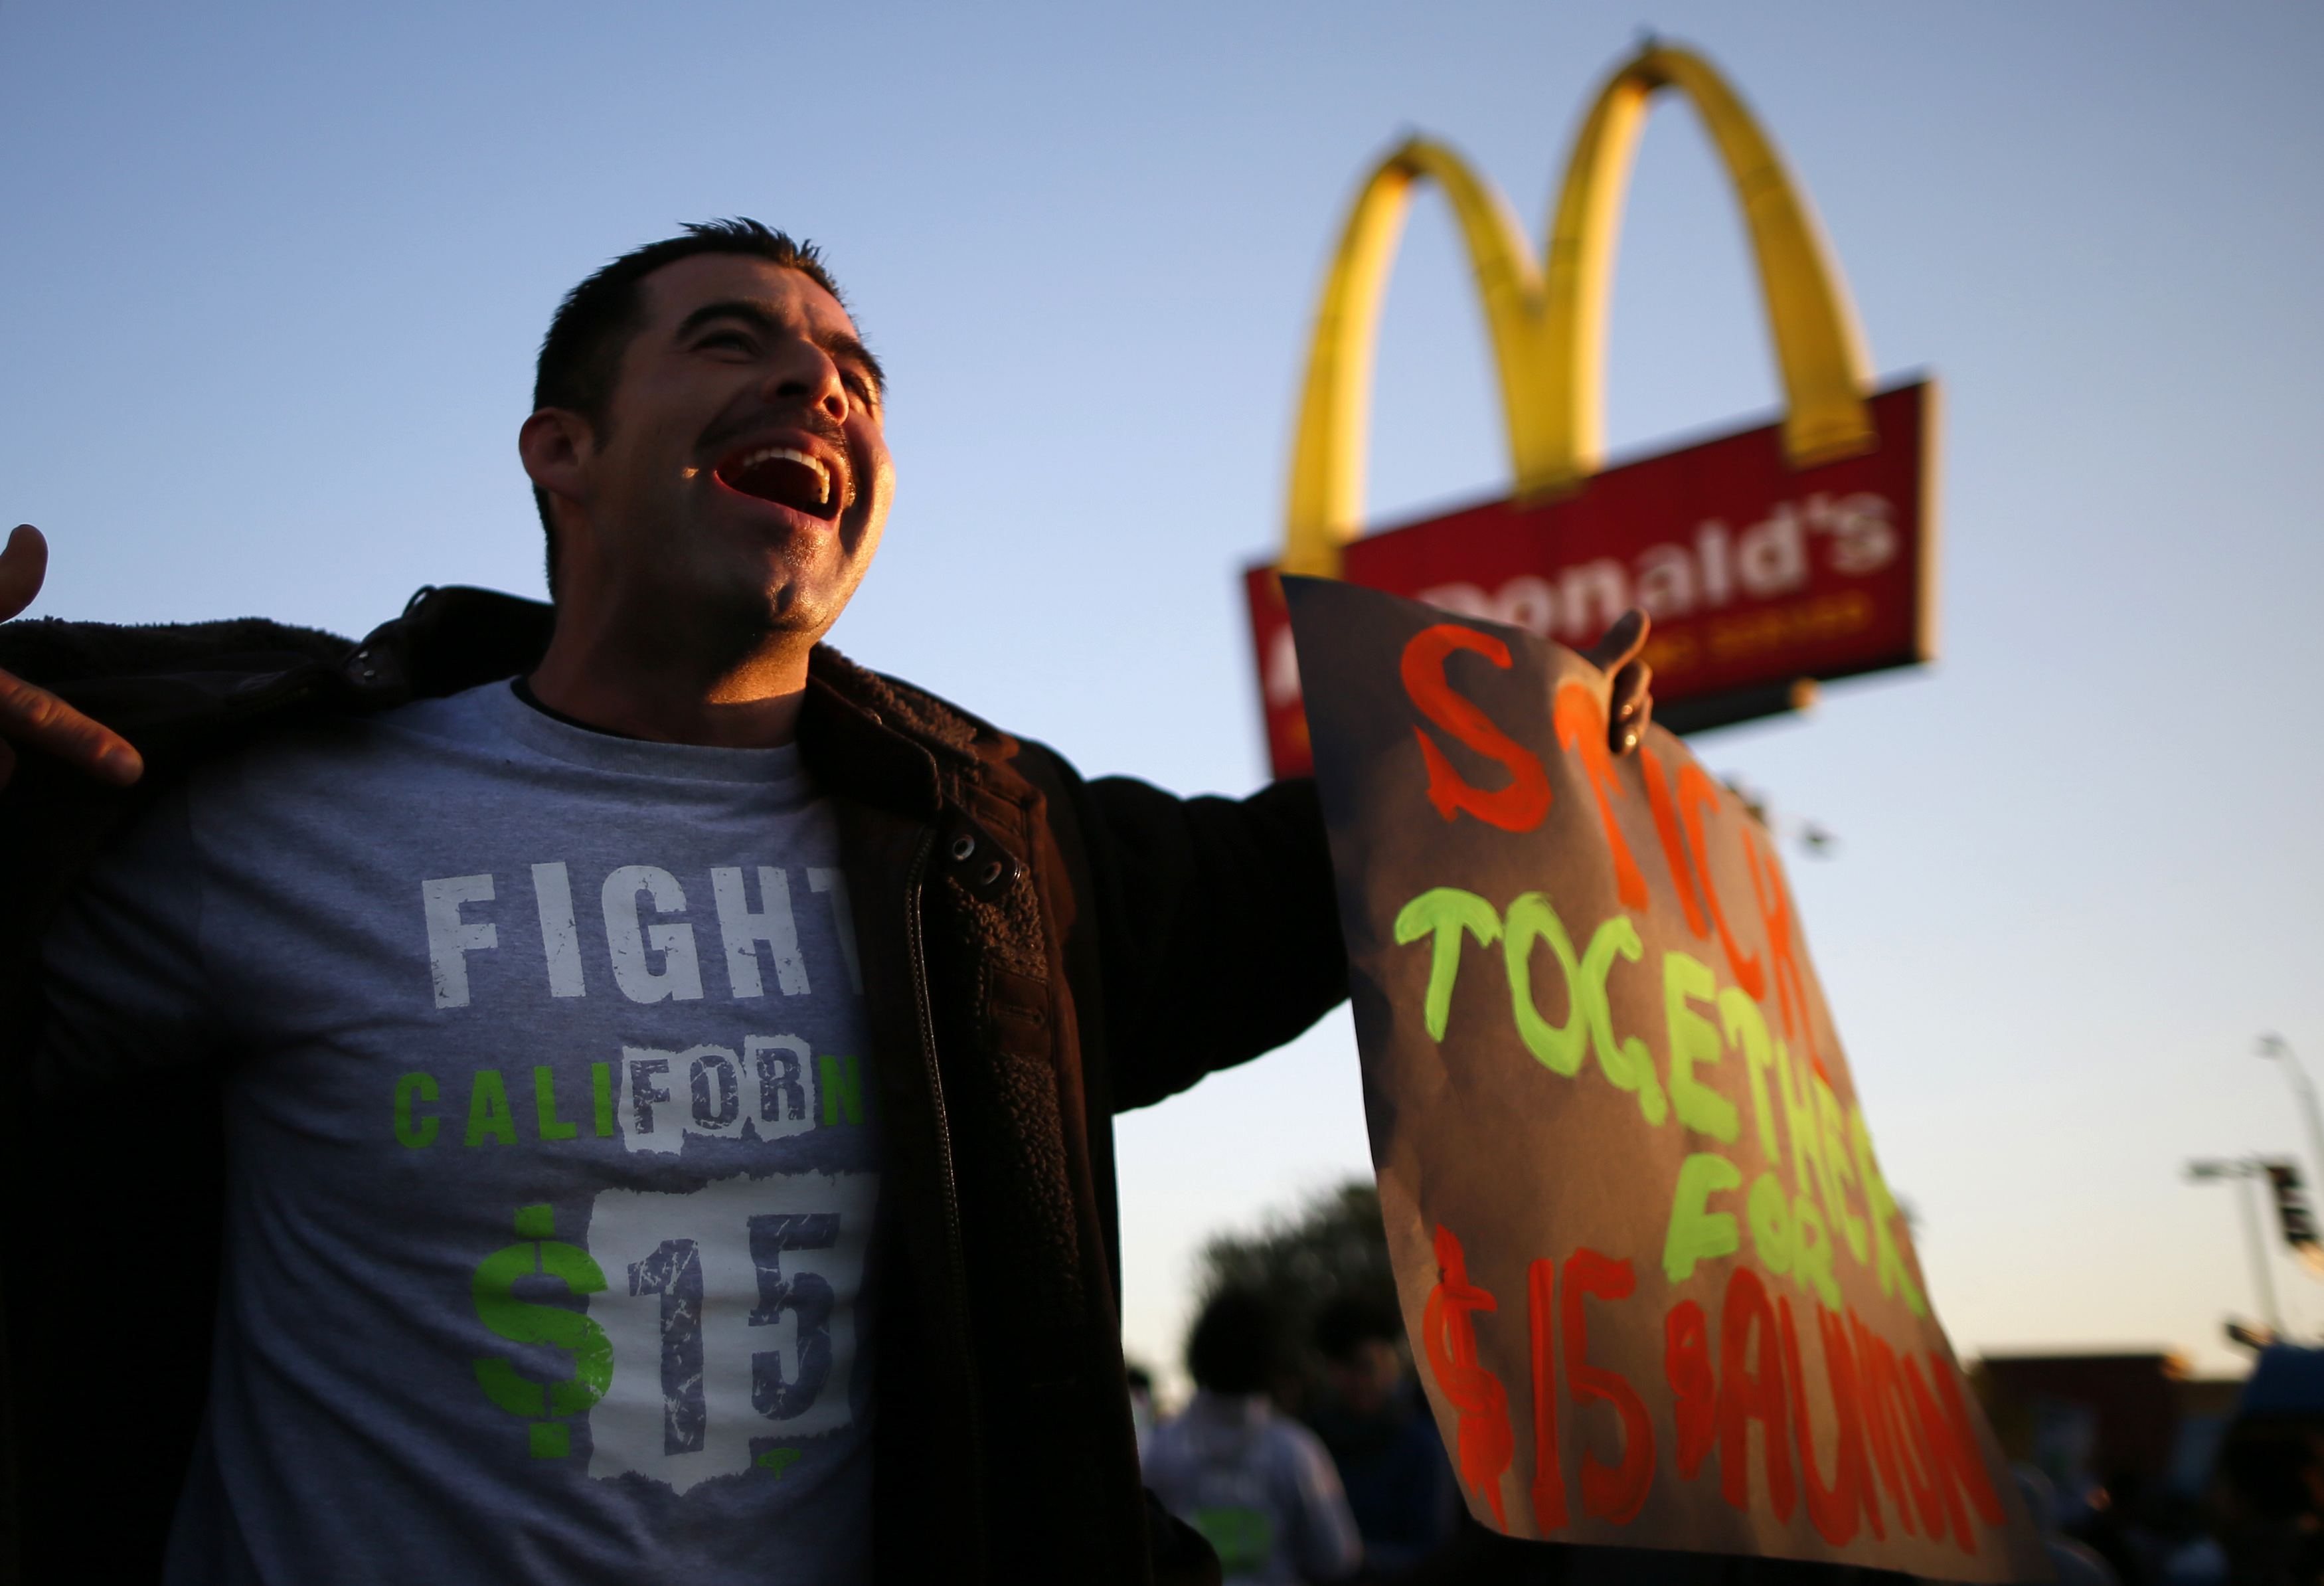 Striking McDonald's worker Abran Escarzaga, 31, protests outside McDonald's in Los Angeles